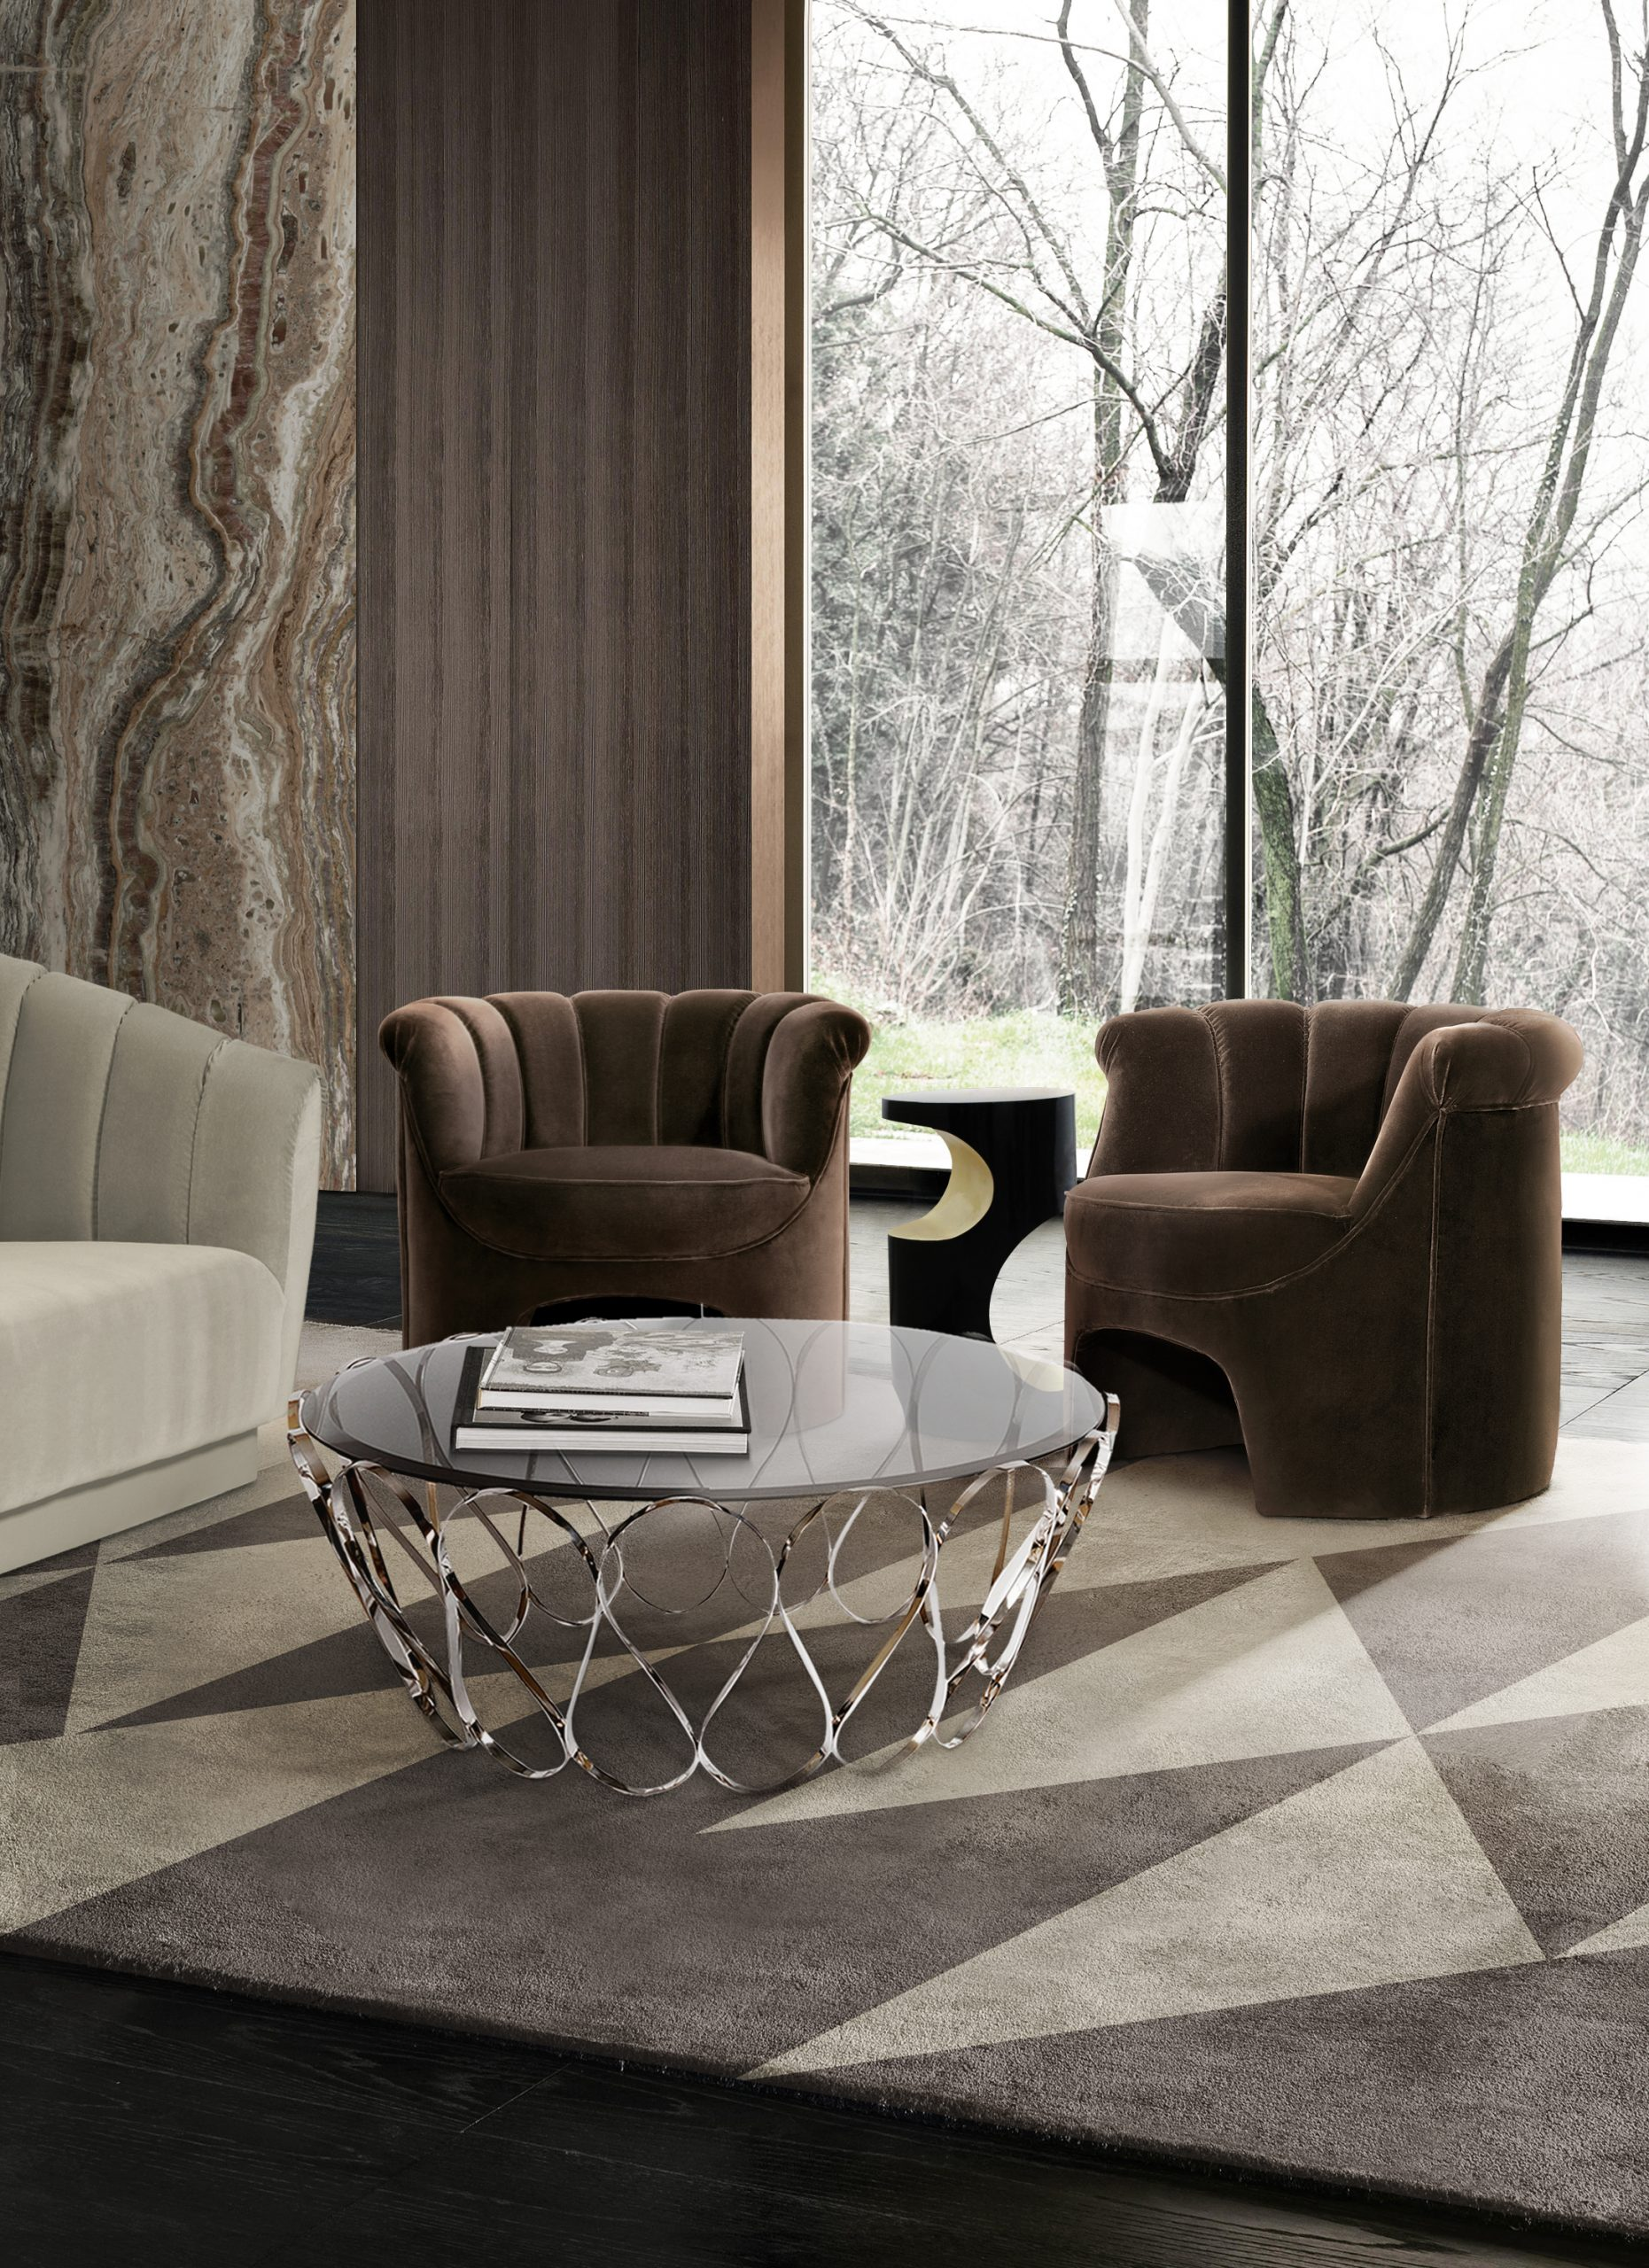 Accent Chairs: Tips On How To Choose A Chair To Make a Statement accent chairs Accent Chairs: Tips On How To Choose A Chair To Make a Statement 1 hera armchair aquarius origami rug scaled